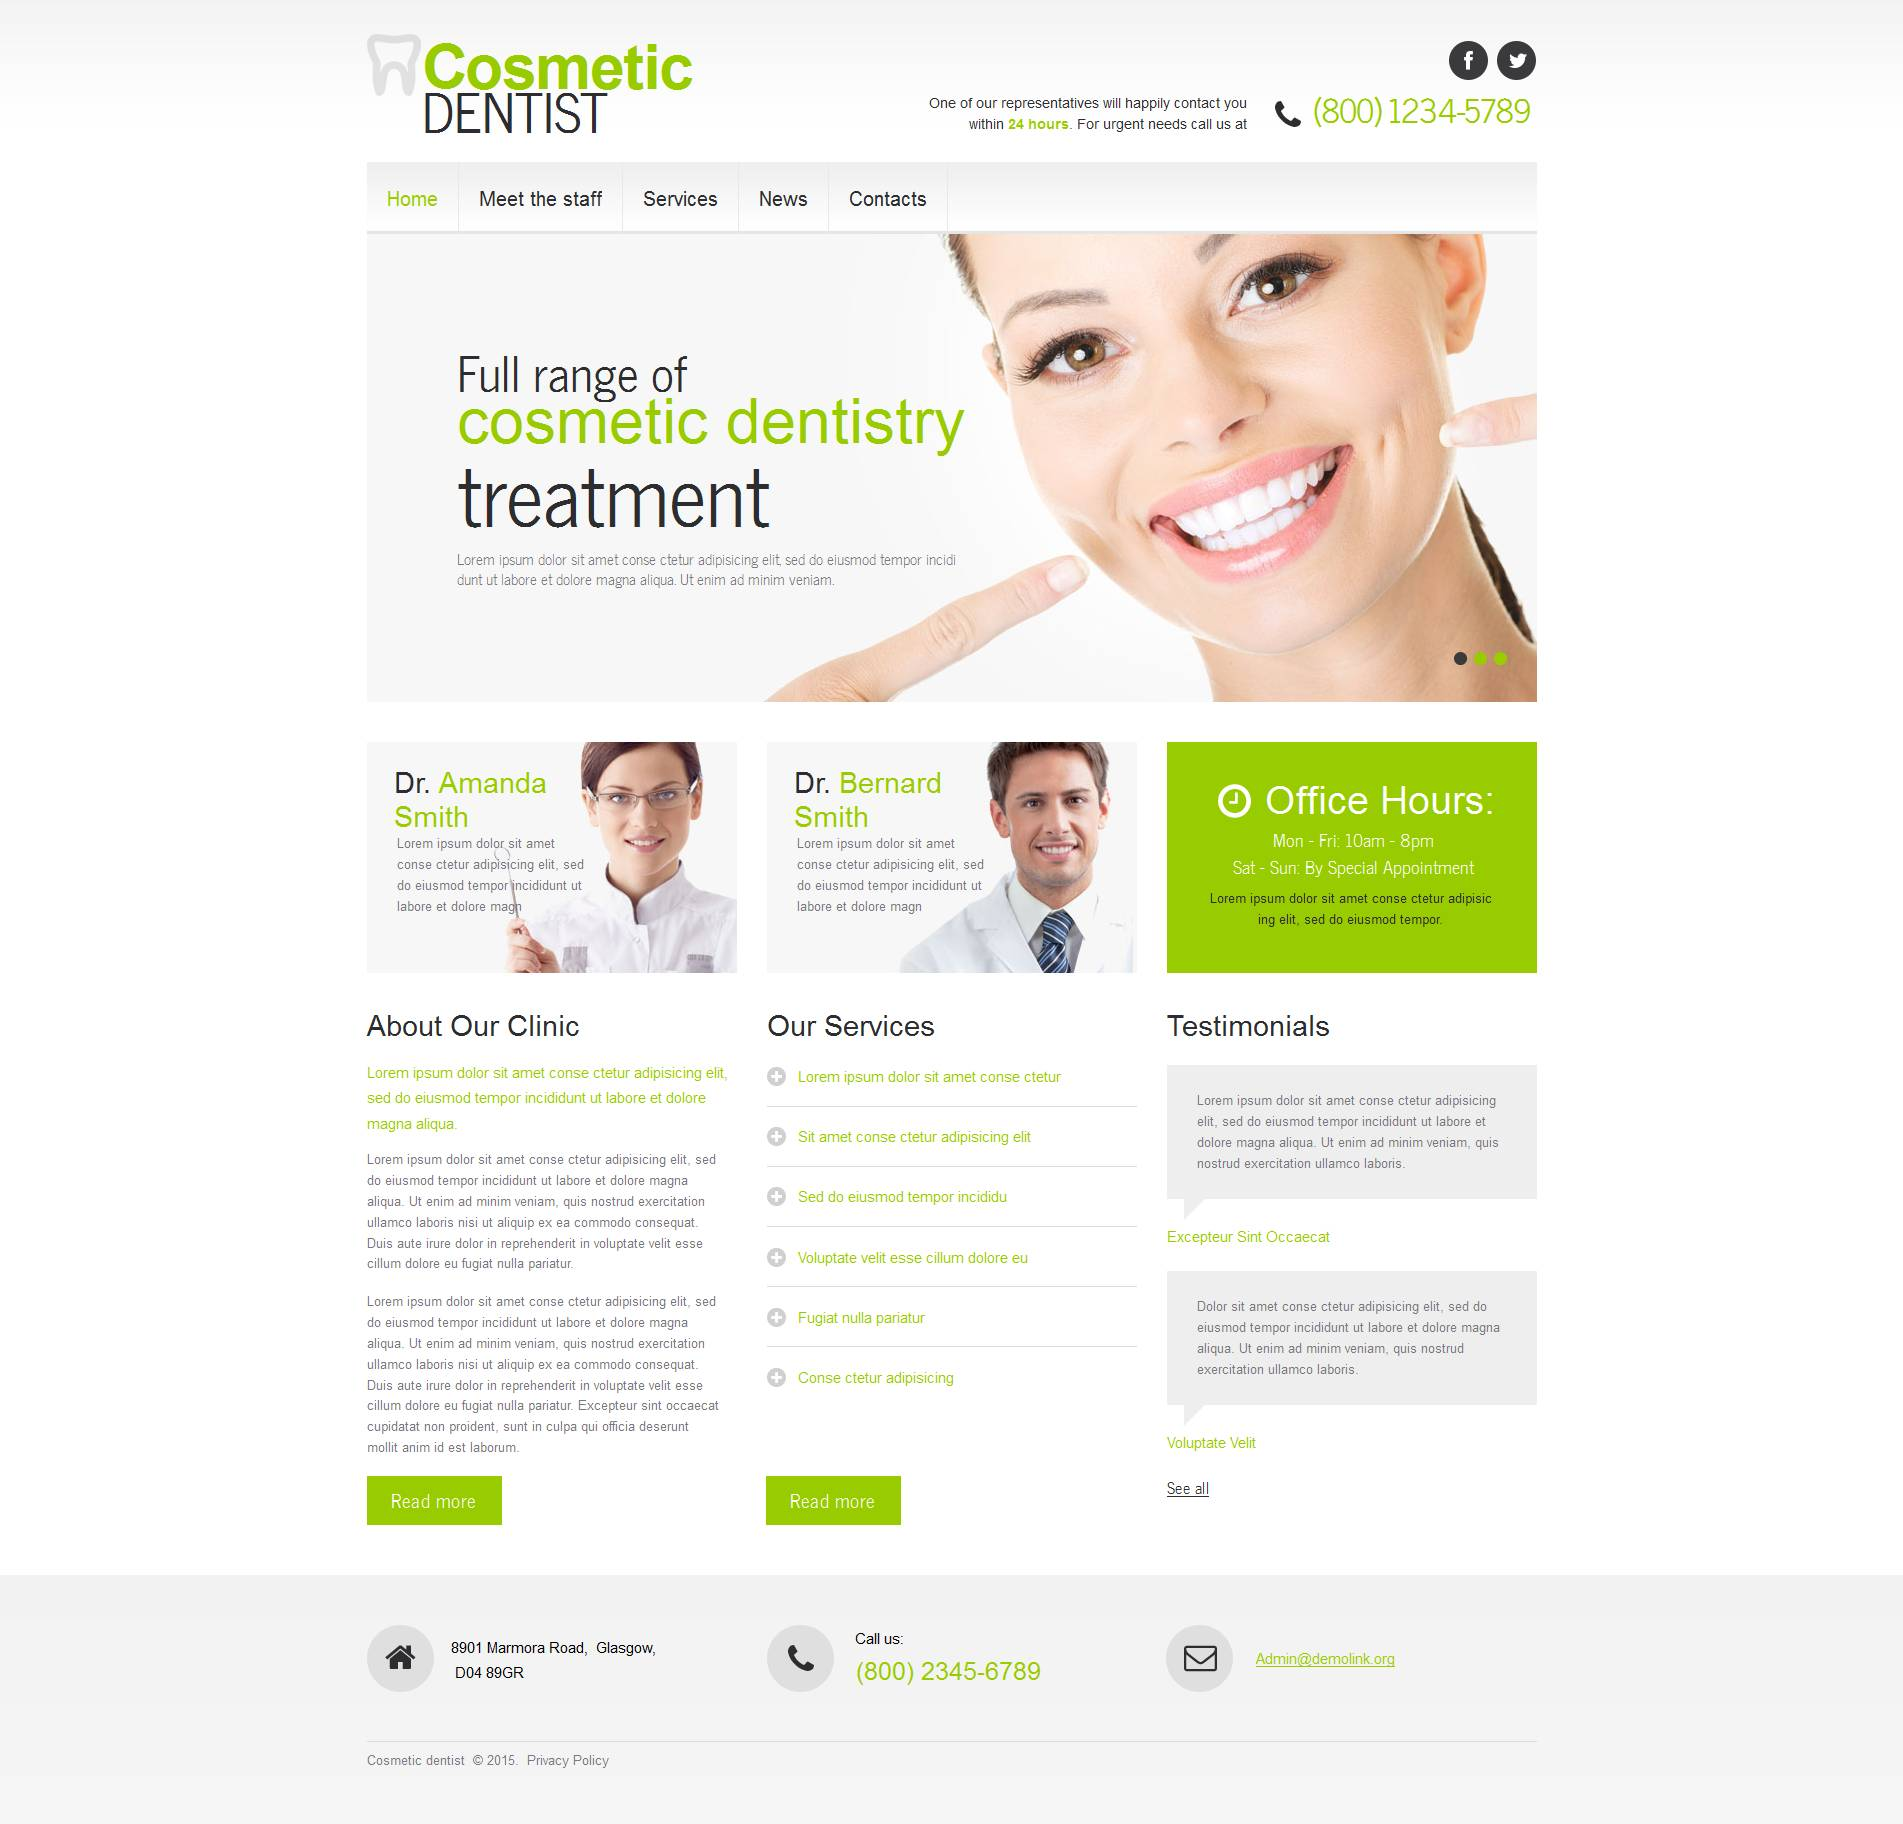 The Cosmetic Dentist Moto CMS HTML Design 53523, one of the best Moto CMS HTML templates of its kind (medical, most popular), also known as cosmetic dentist Moto CMS HTML template, teeth Moto CMS HTML template, policlinic Moto CMS HTML template, bright smile Moto CMS HTML template, doctor Moto CMS HTML template, services Moto CMS HTML template, dentistry Moto CMS HTML template, cosmetic care Moto CMS HTML template, health Moto CMS HTML template, prices Moto CMS HTML template, bleaching Moto CMS HTML template, prosthesis Moto CMS HTML template, crown of  tooth Moto CMS HTML template, implant Moto CMS HTML template, clients Moto CMS HTML template, testimonials Moto CMS HTML template, pain Moto CMS HTML template, painless Moto CMS HTML template, treatment solution Moto CMS HTML template, technology Moto CMS HTML template, dental Moto CMS HTML template, services Moto CMS HTML template, stopping Moto CMS HTML template, caries Moto CMS HTML template, parodontosis and related with cosmetic dentist, teeth, policlinic, bright smile, doctor, services, dentistry, cosmetic care, health, prices, bleaching, prosthesis, crown of  tooth, implant, clients, testimonials, pain, painless, treatment solution, technology, dental, services, stopping, caries, parodontosis, etc.